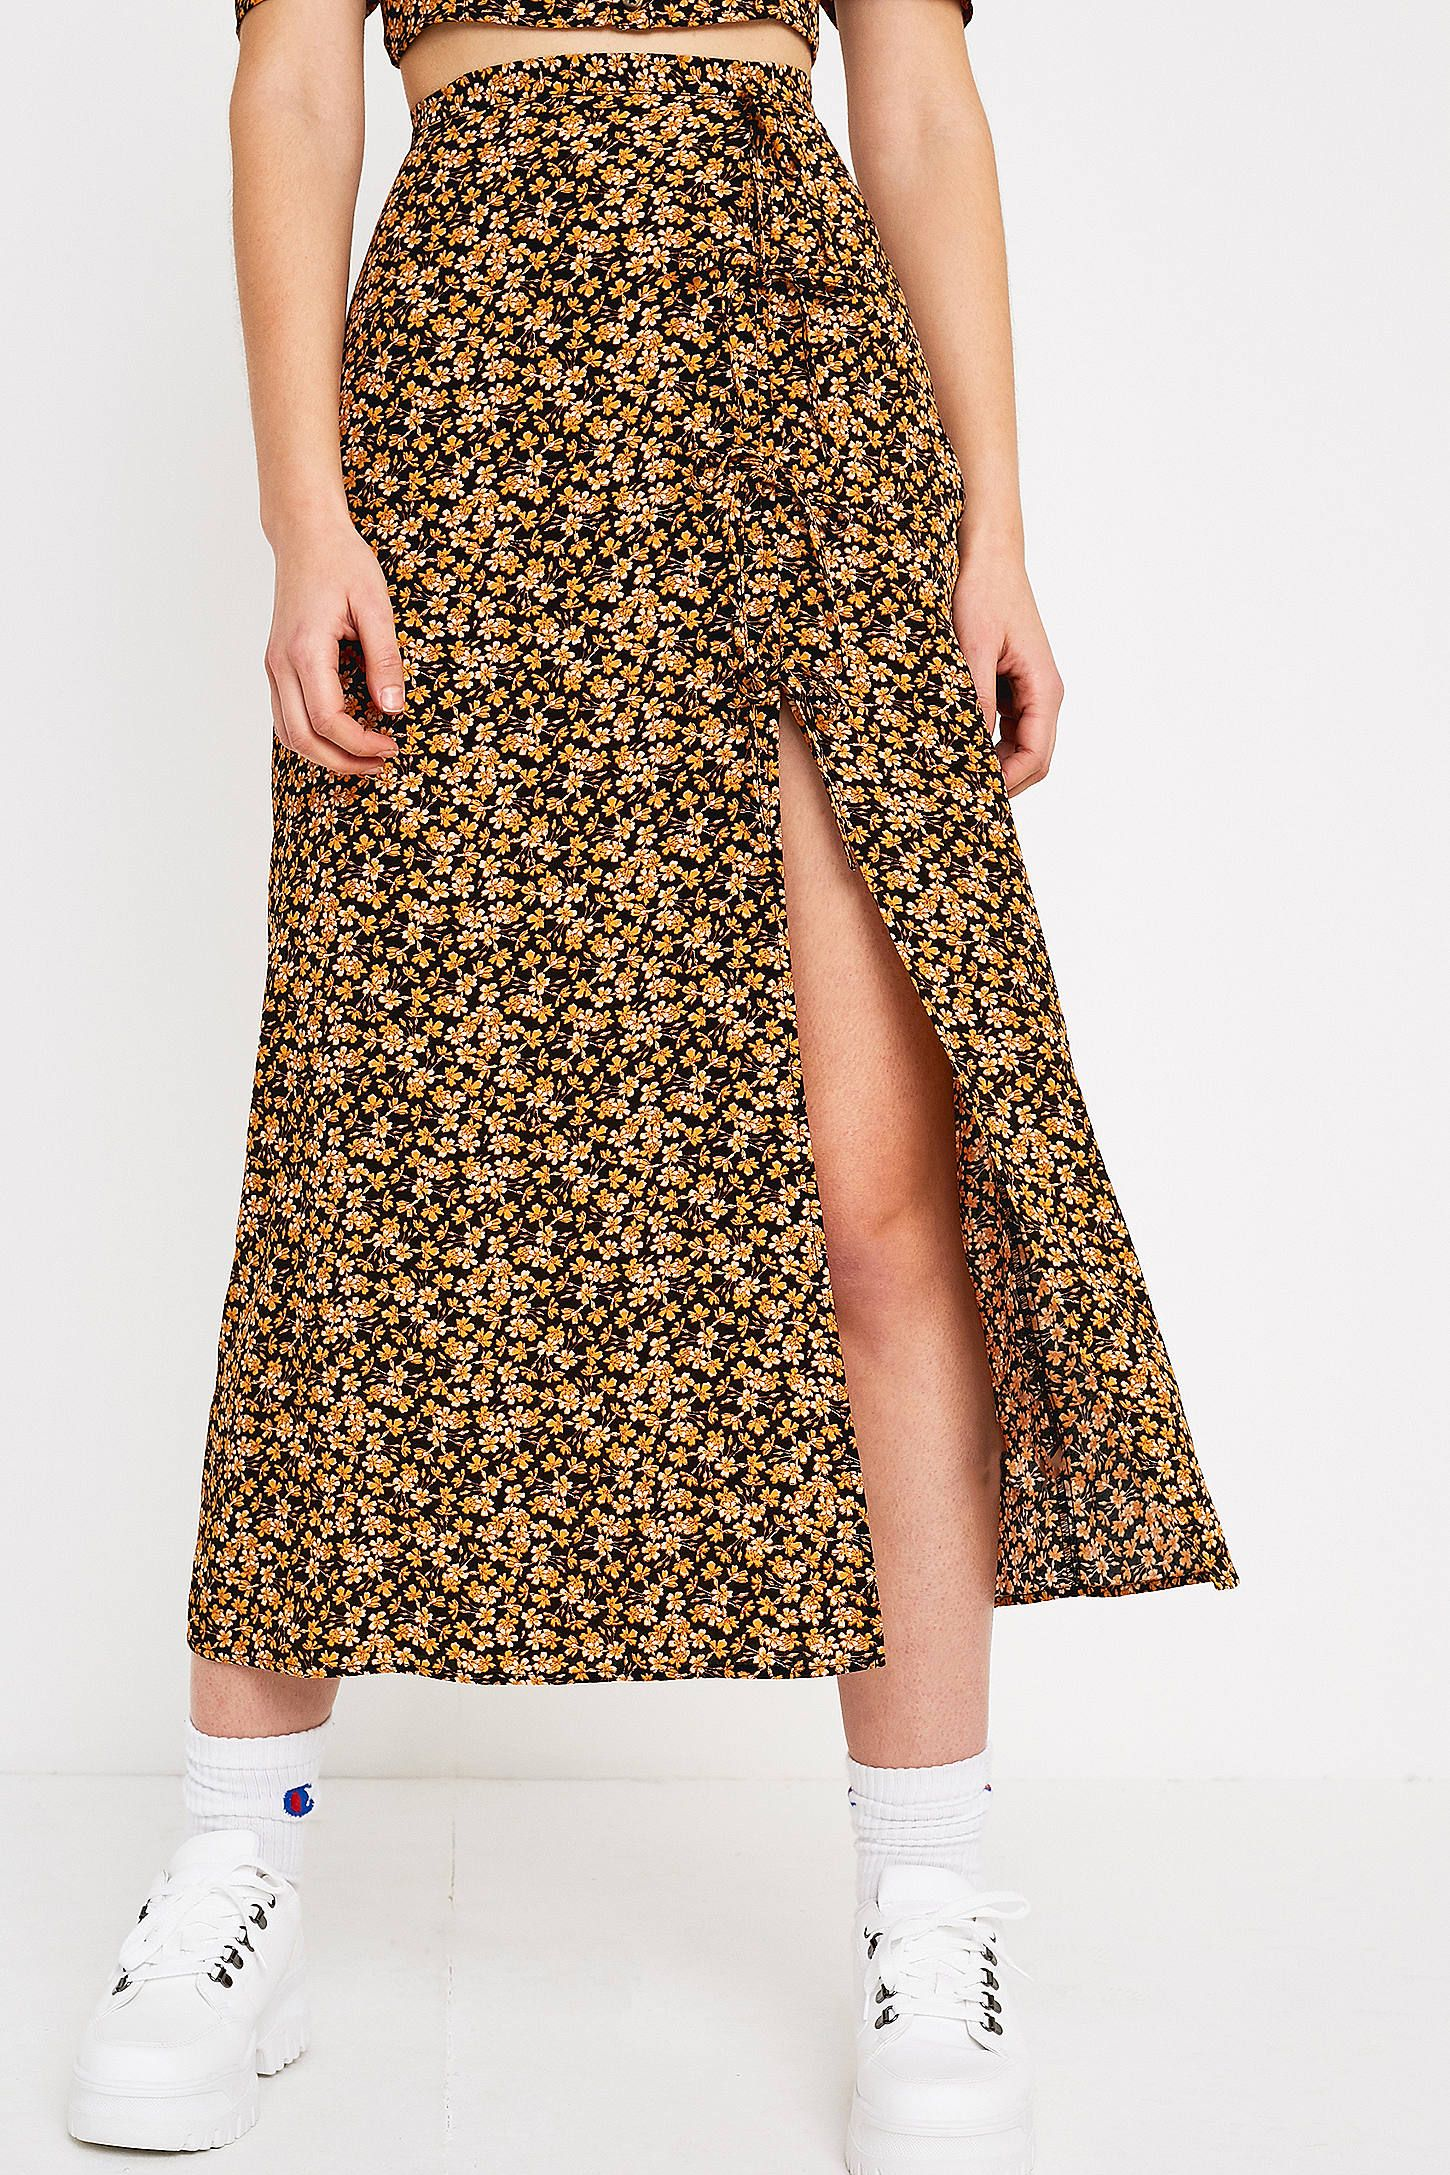 UO Floral Tie Side Midaxi Skirt   Floral print skirt, Skirts